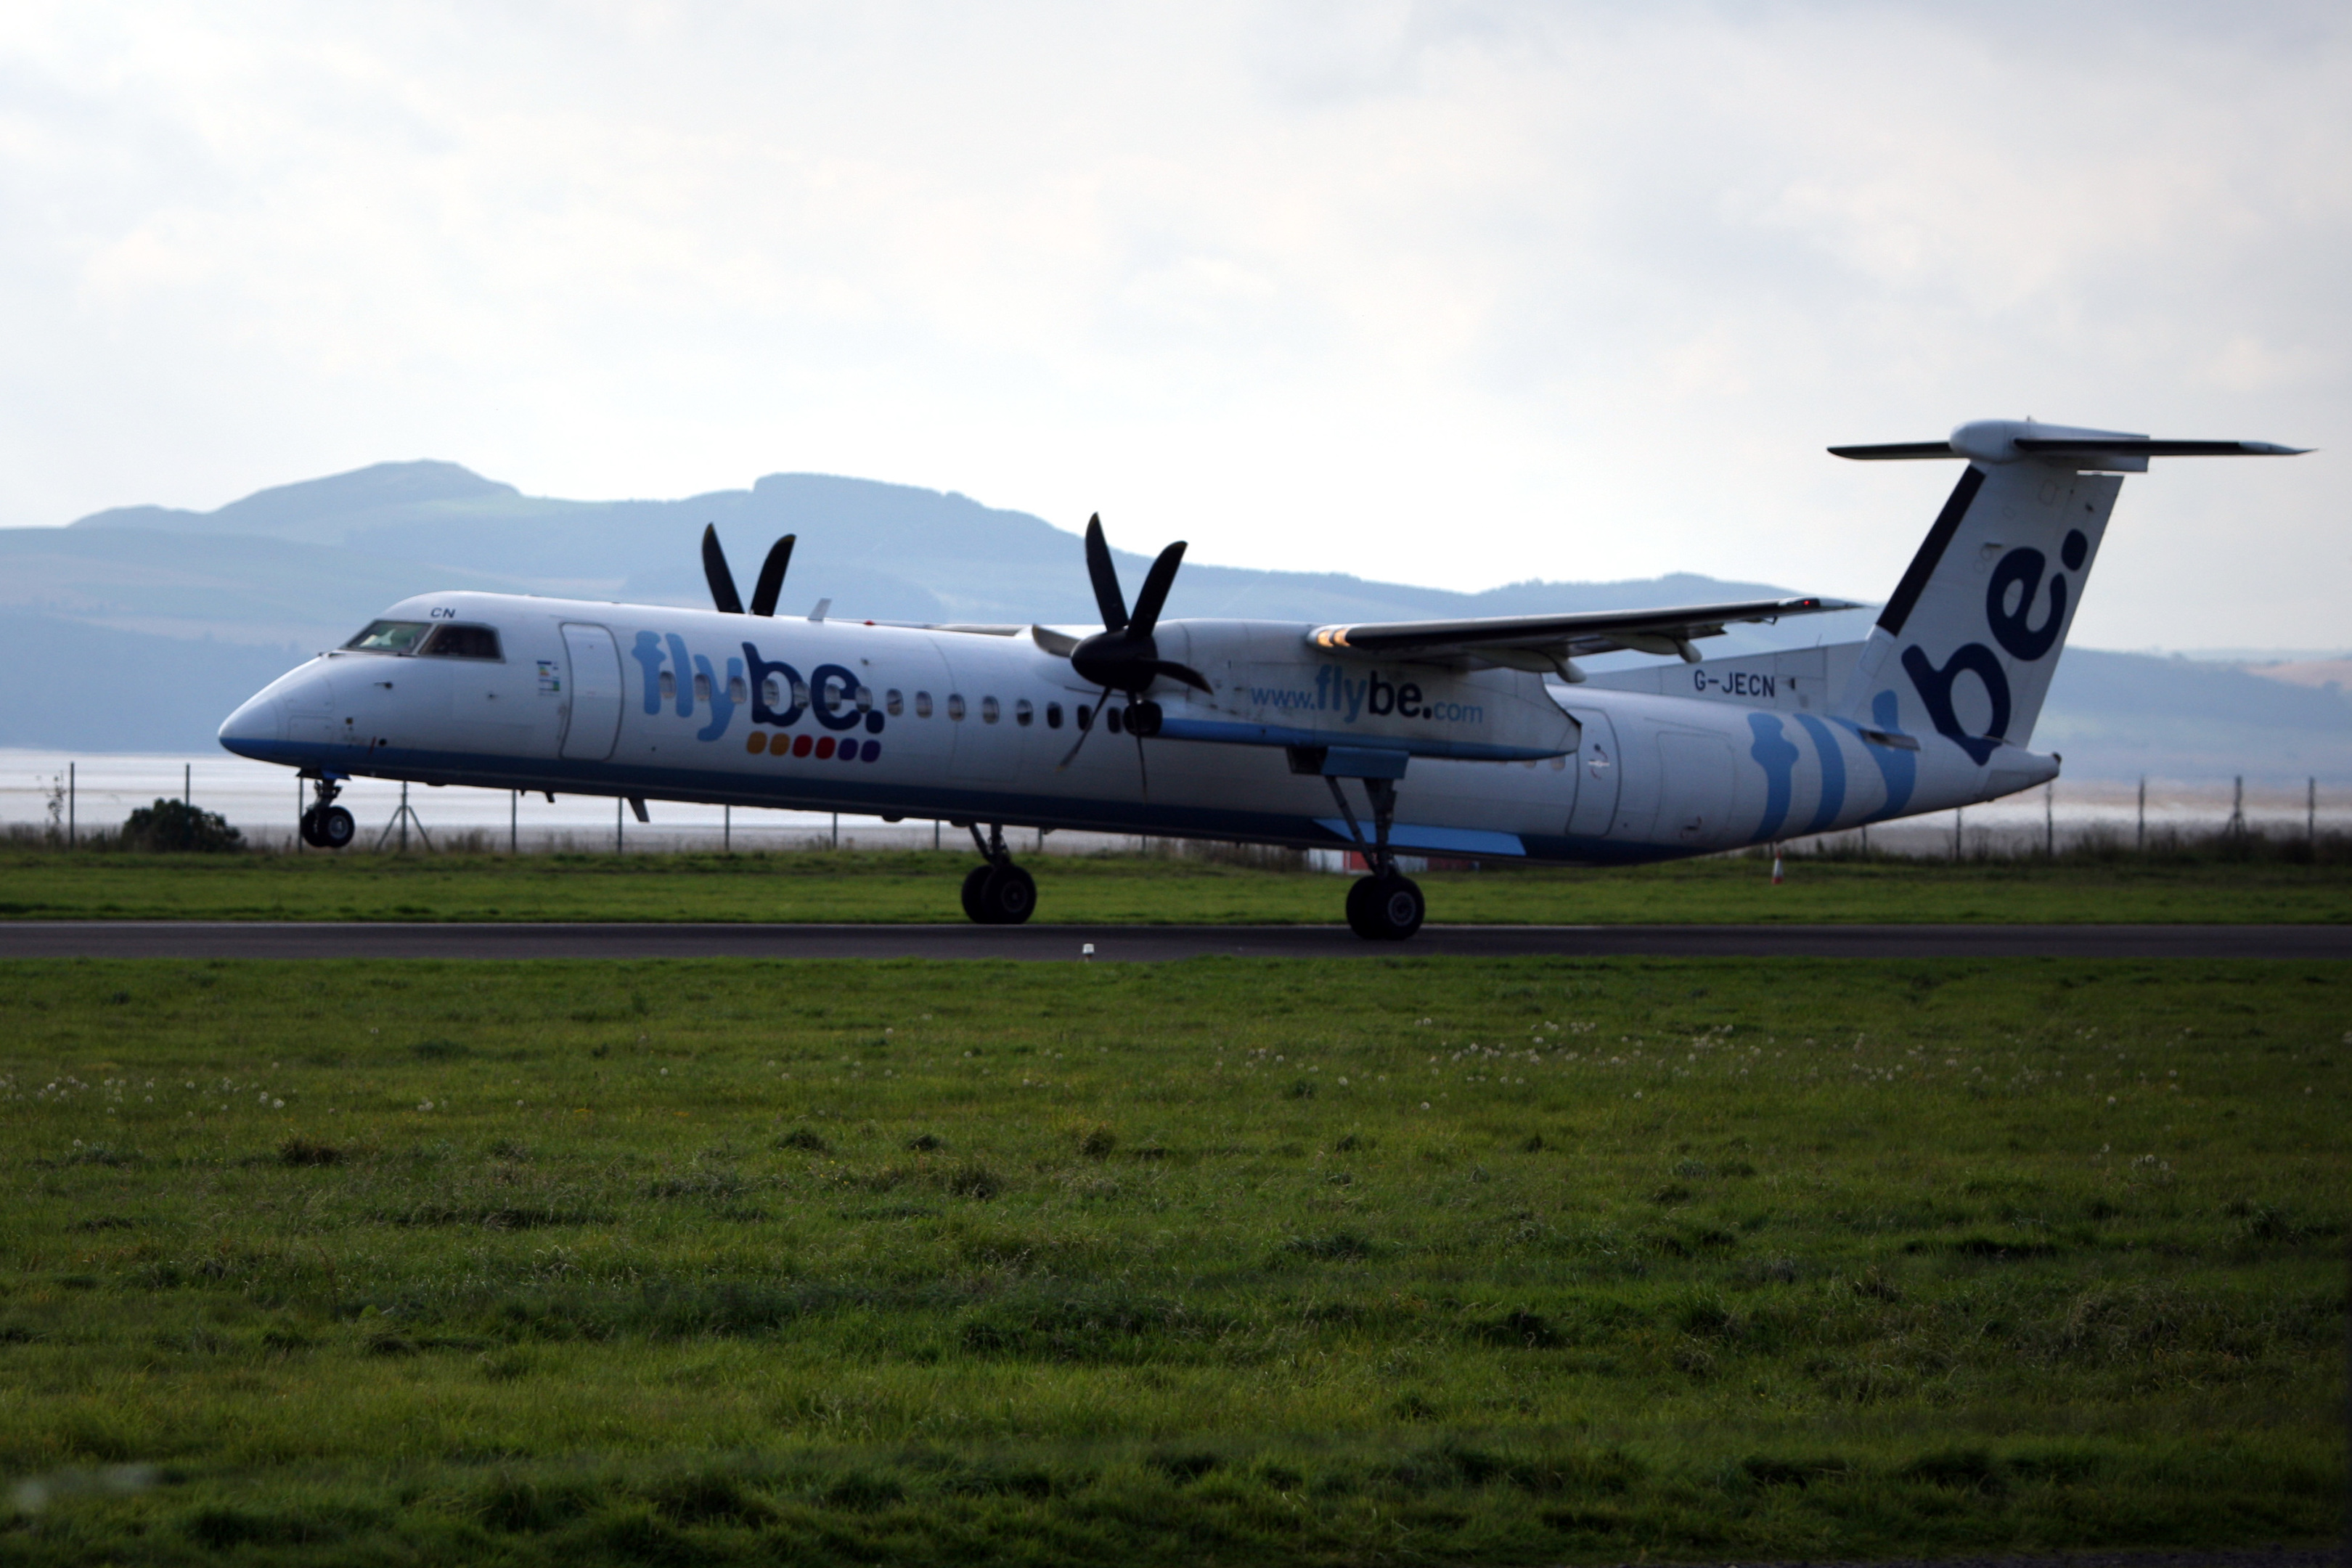 A FlyBe flight leaving Dundee airport for Amsterdam in September.